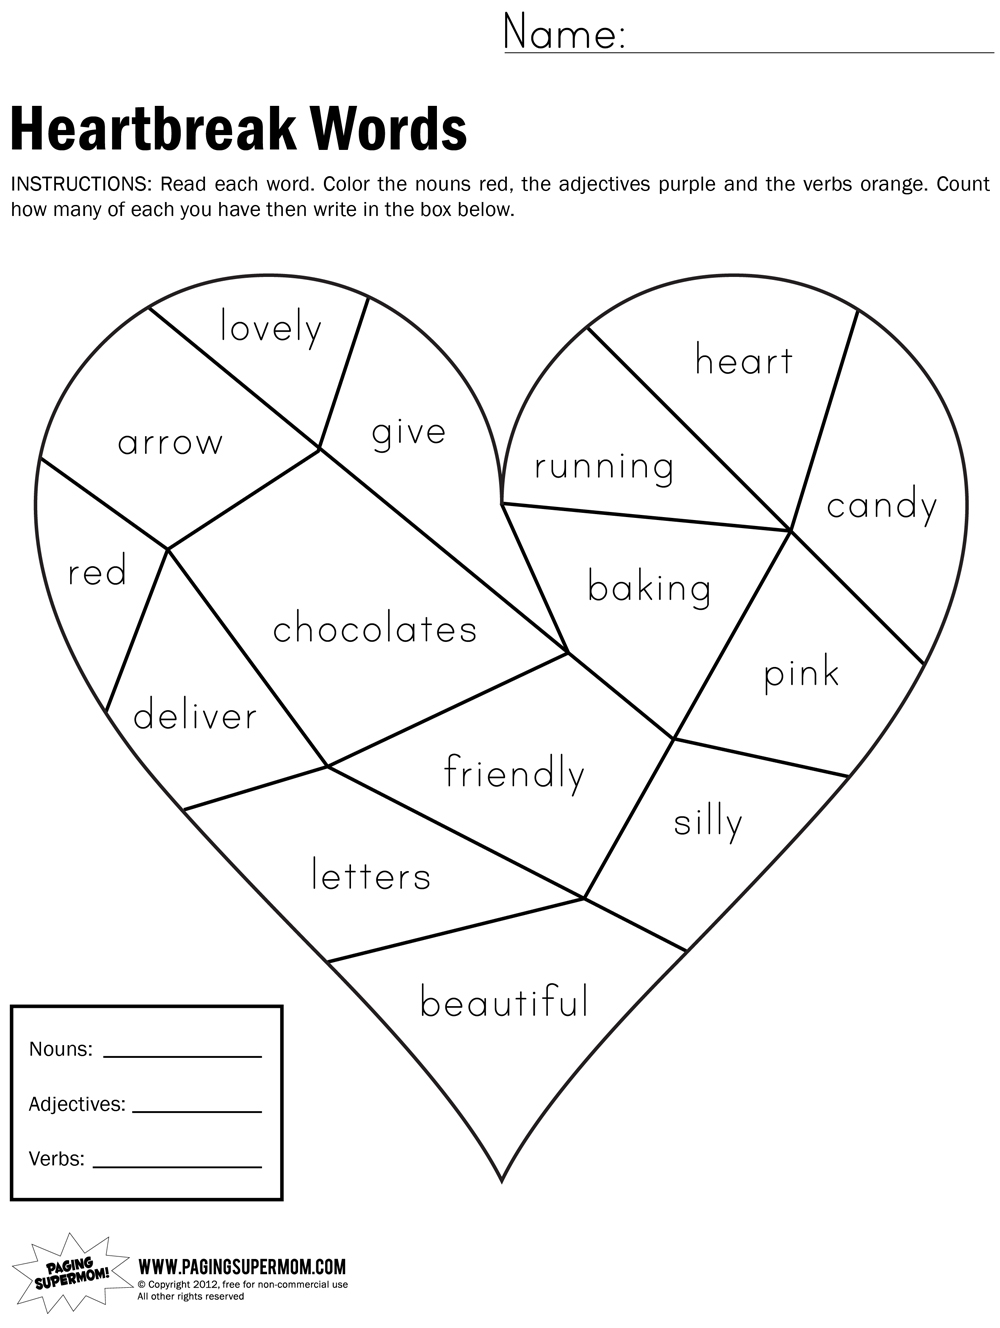 Mother S Day Worksheets 3rd Grade : Heartbreak words free printable worksheet paging supermom